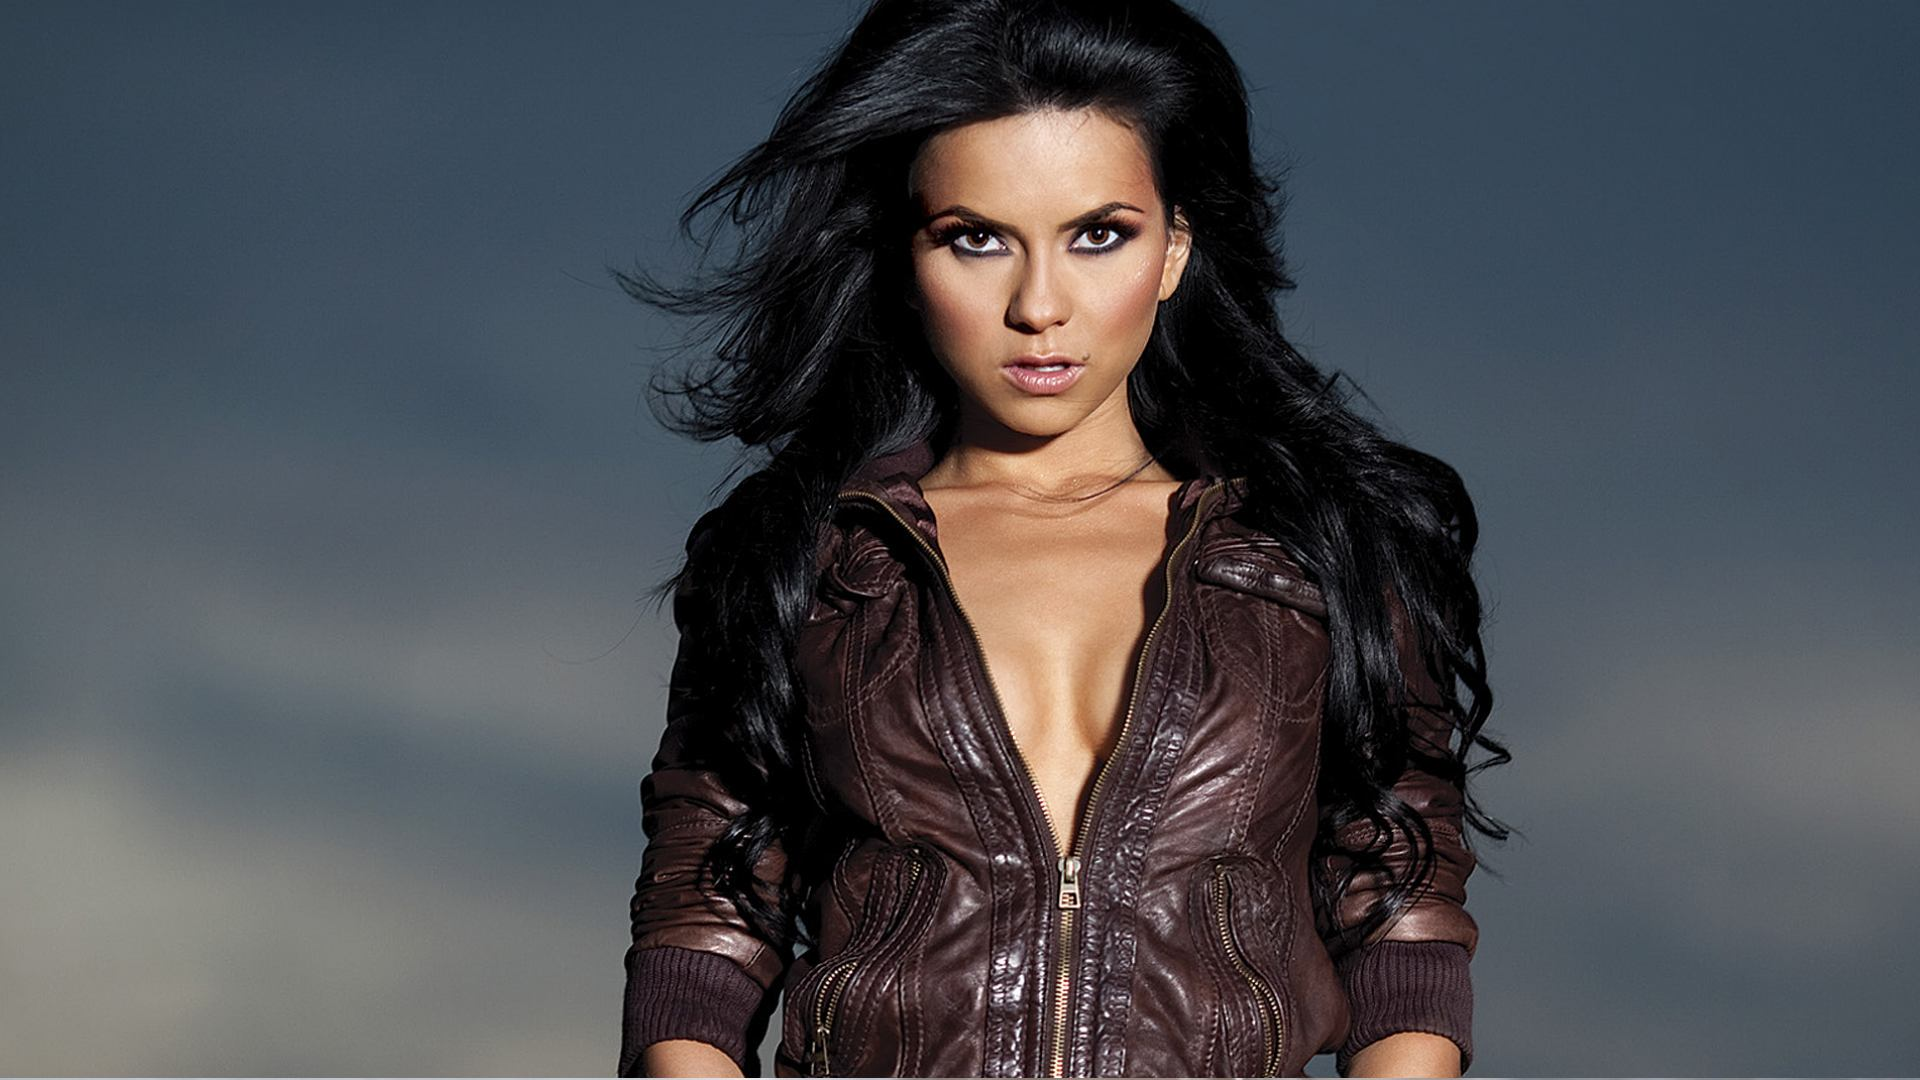 Inna hd wallpaper background image 1920x1080 id - Inna wallpaper hd ...